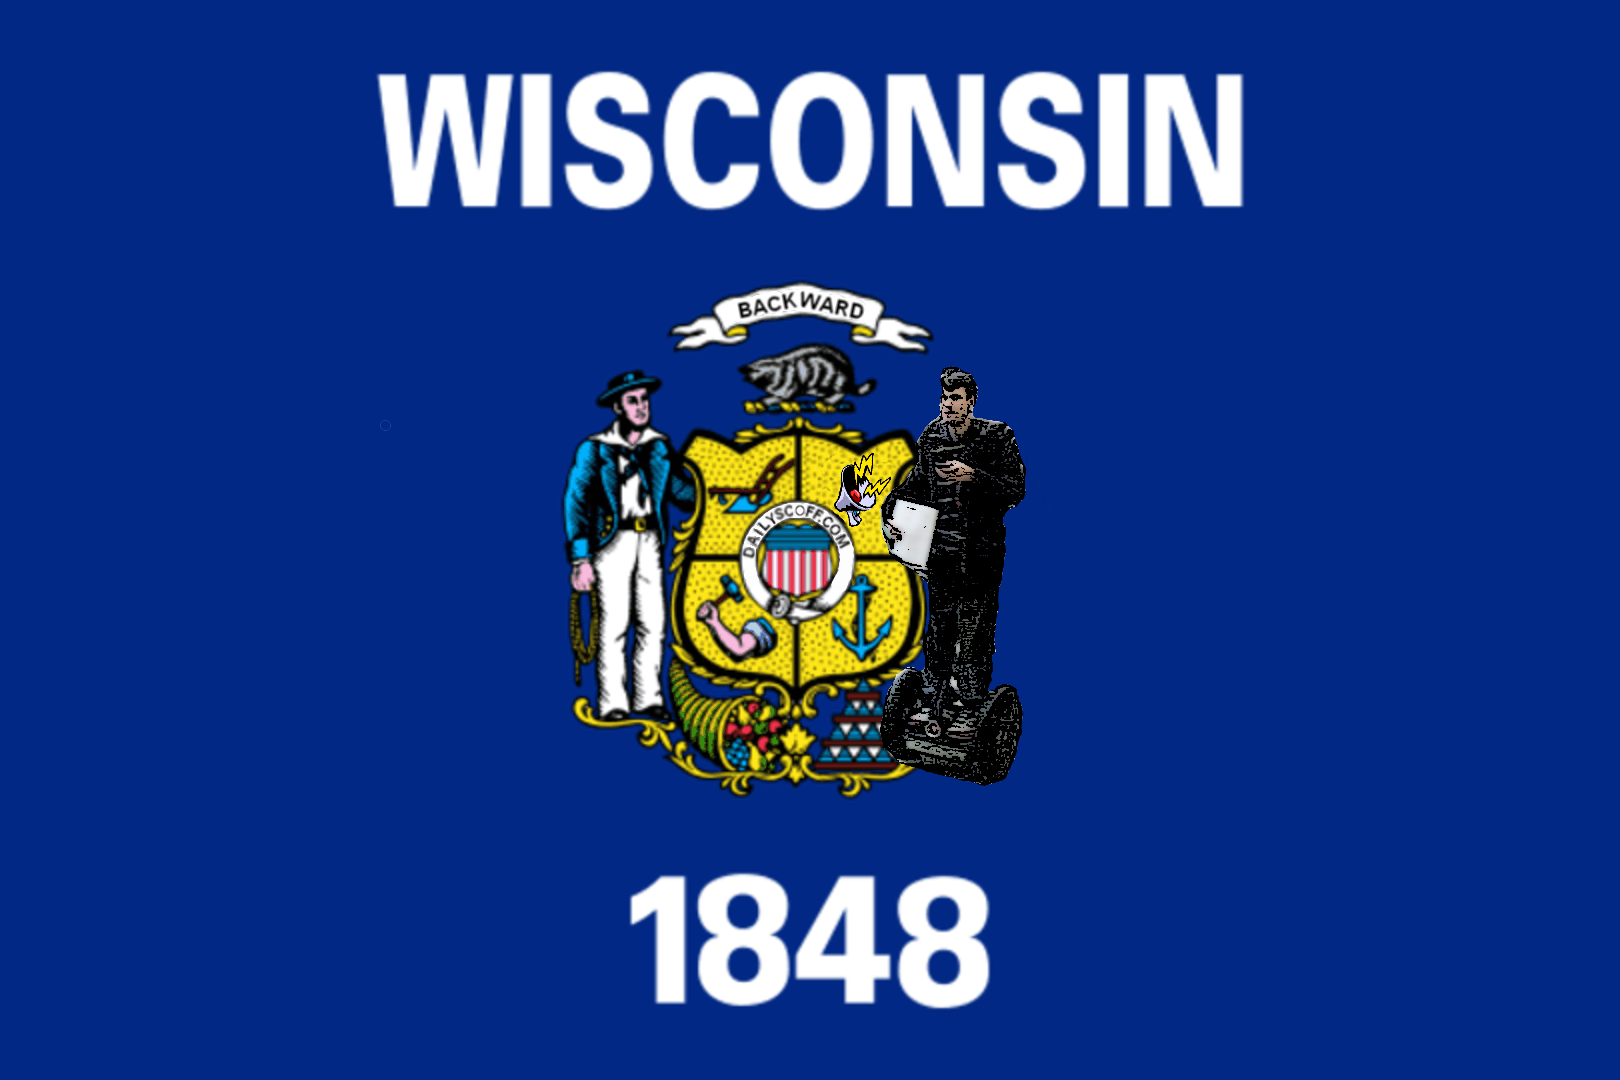 Put Segway Boy on the Wisconsin State Flag?